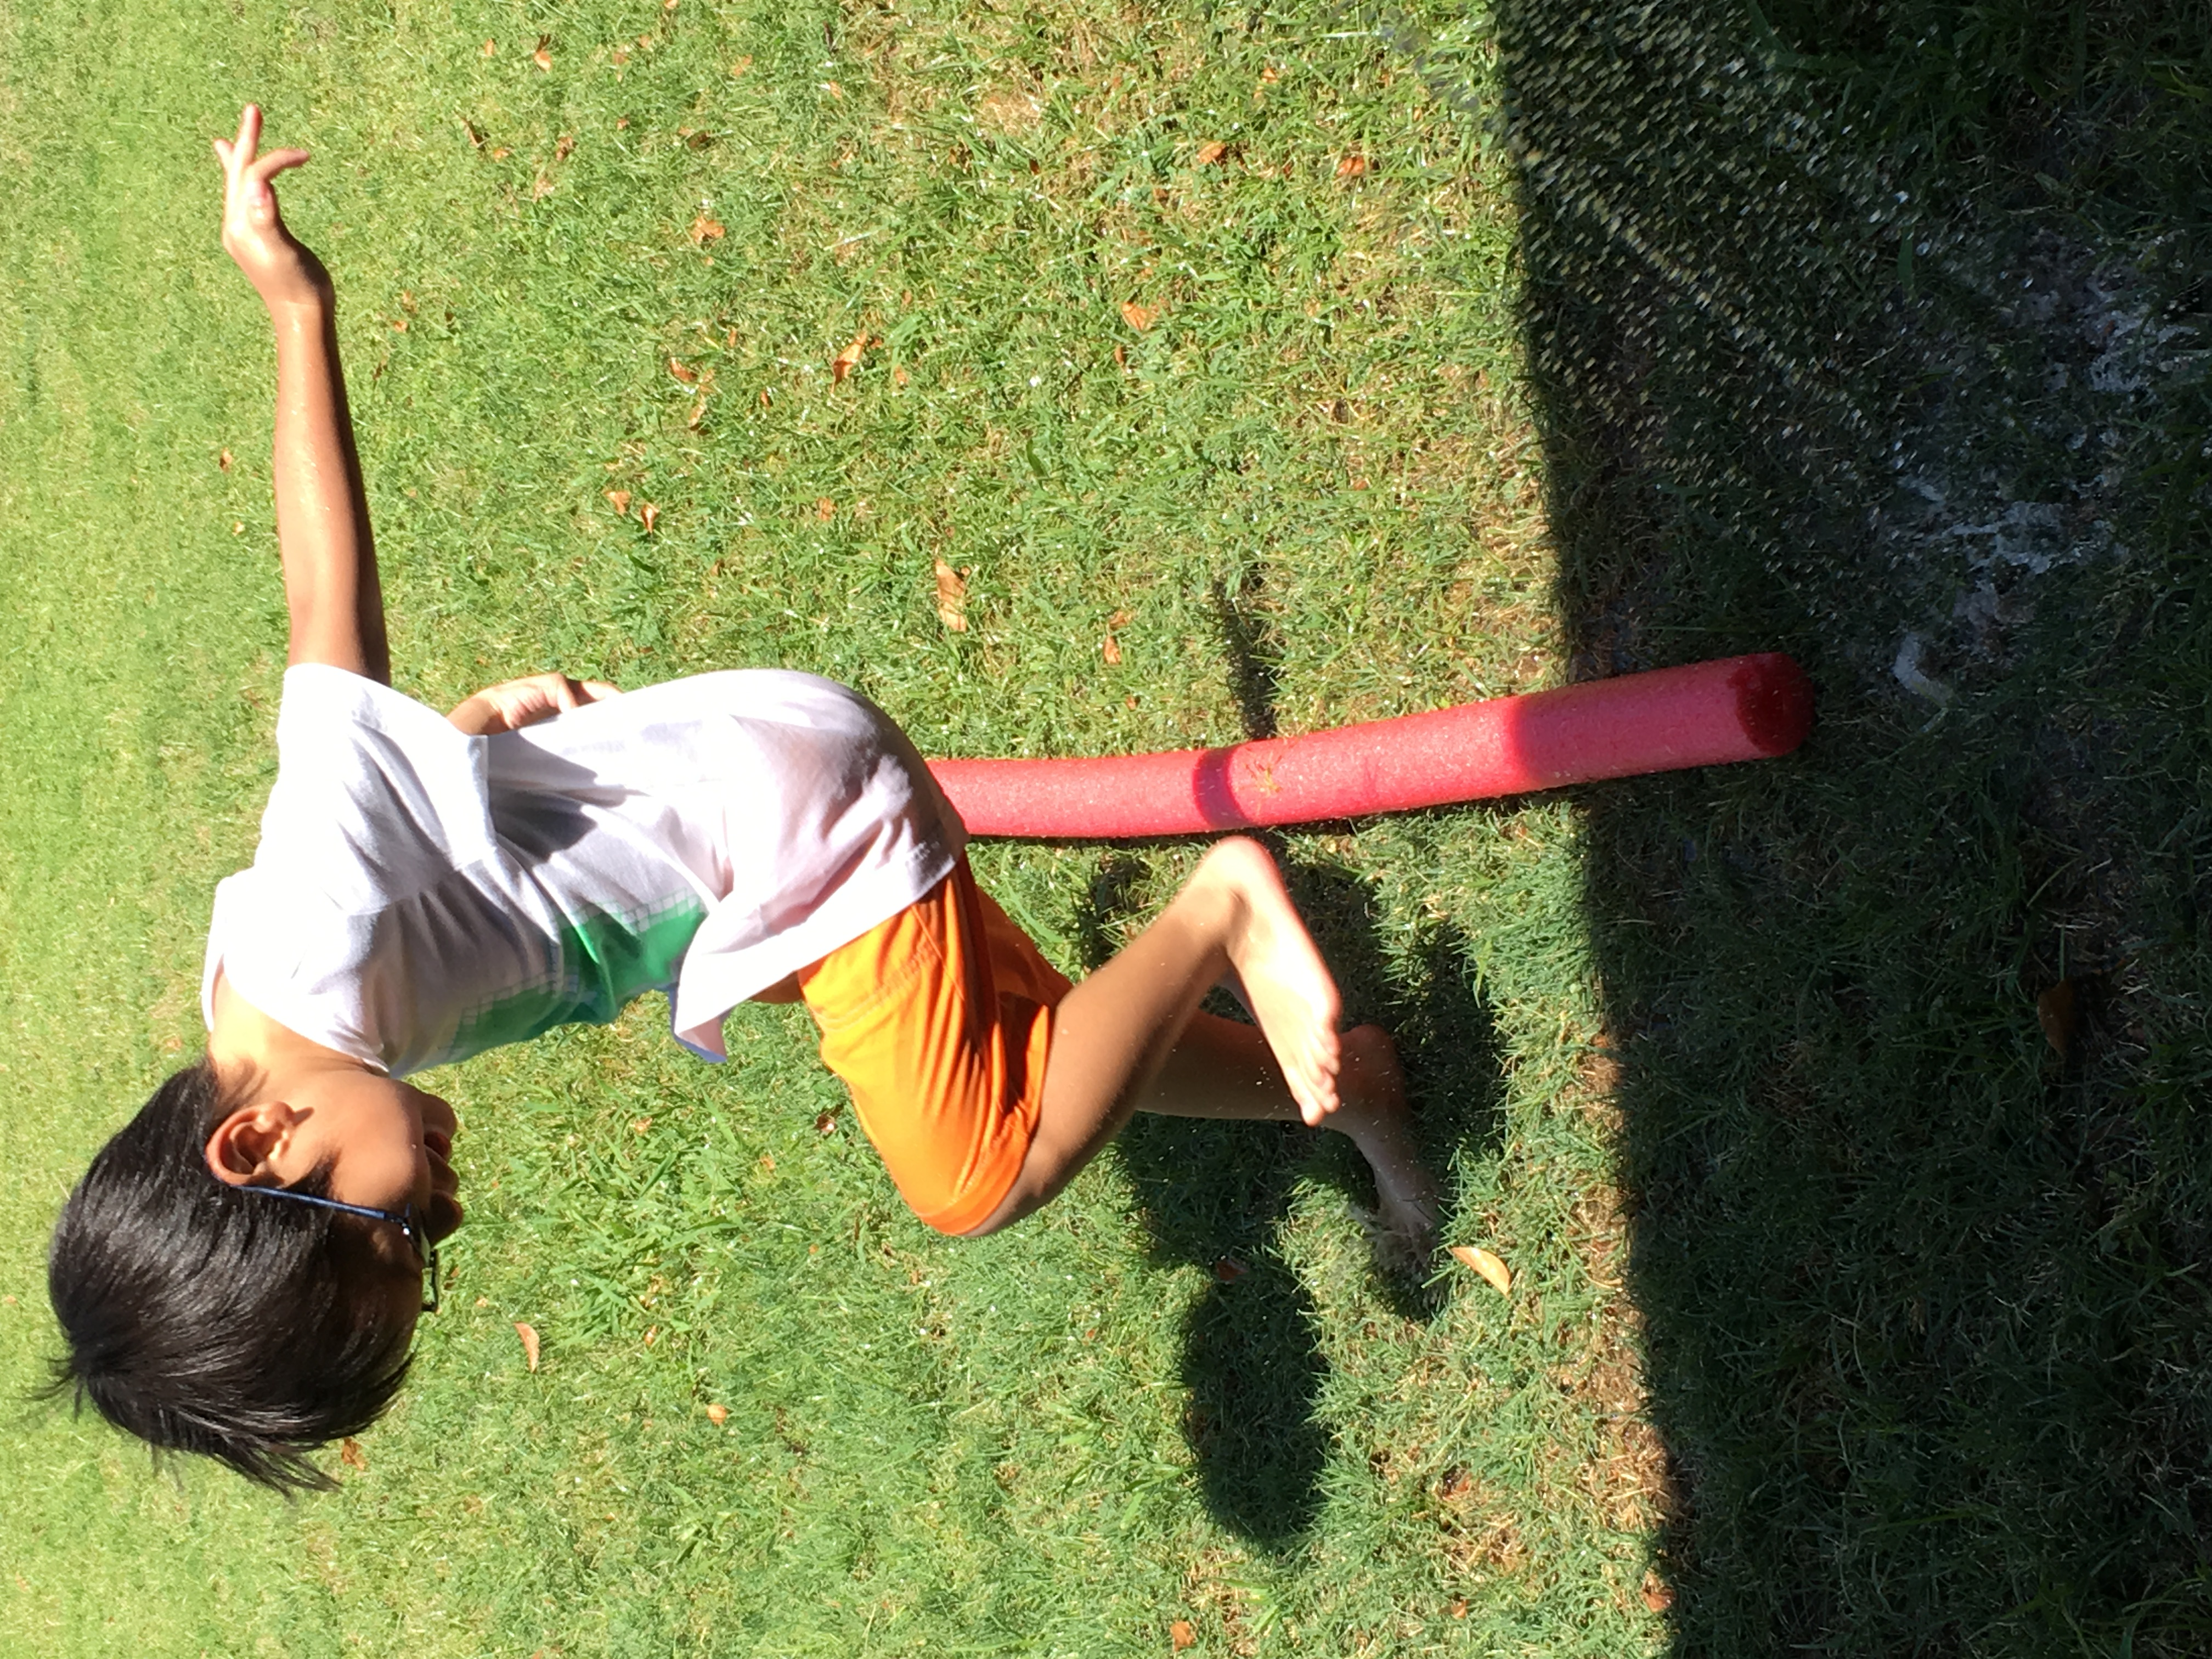 Child hopping over pool noodle